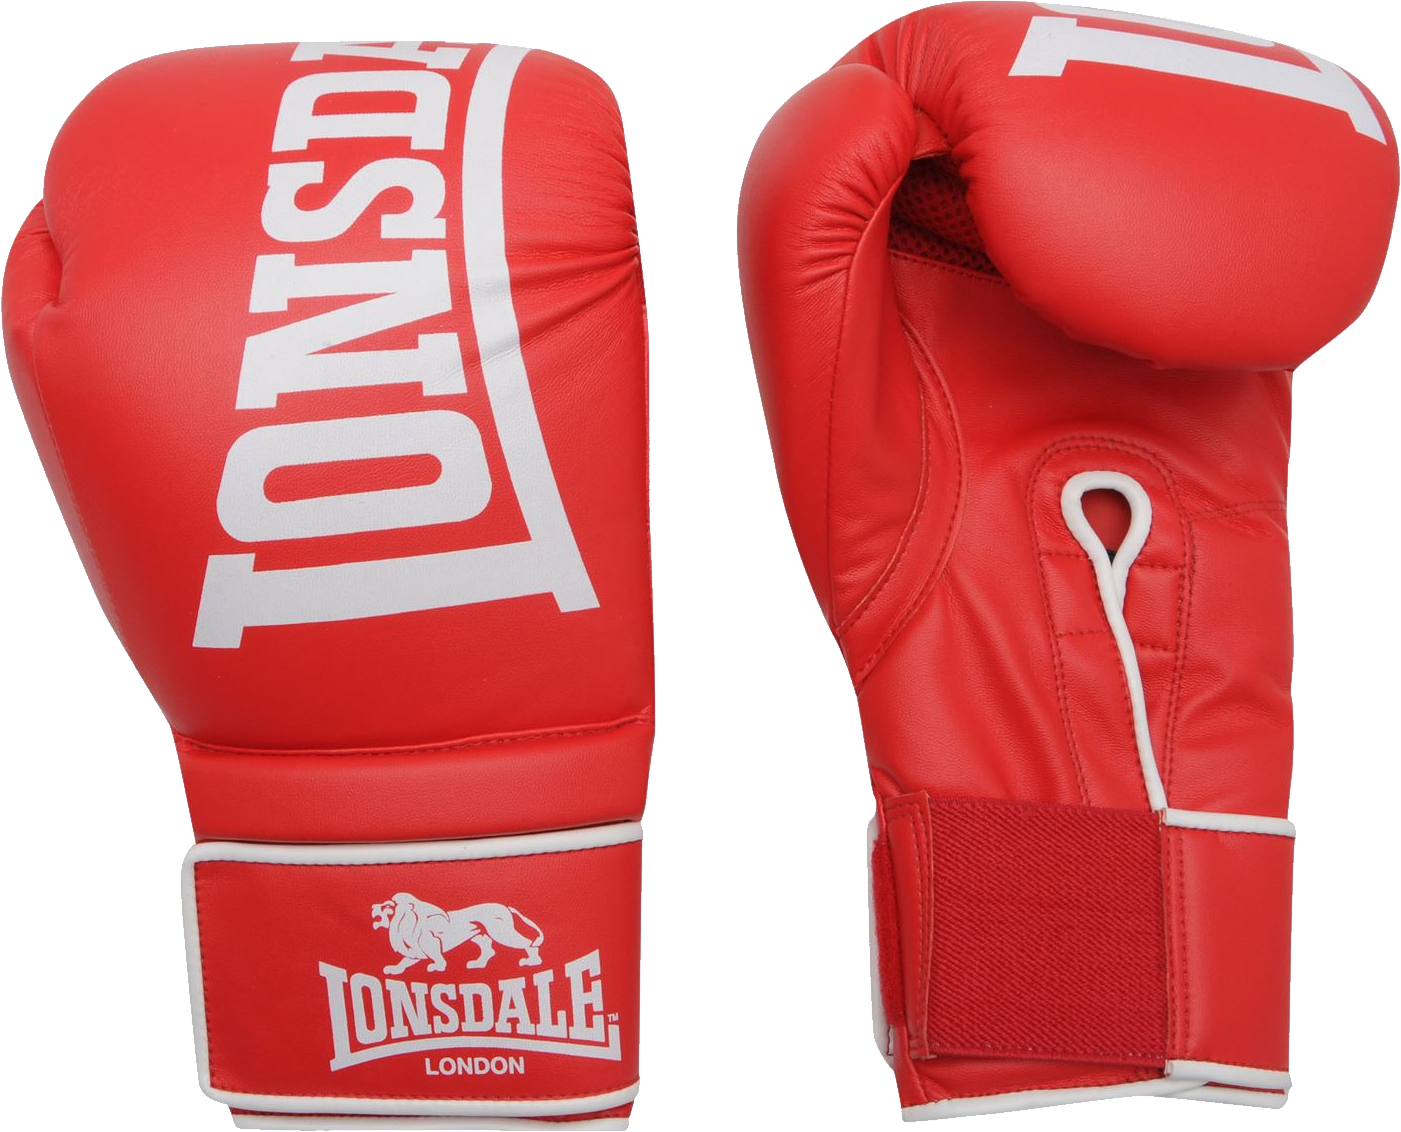 Glove vector muay thai. Boxing png image purepng